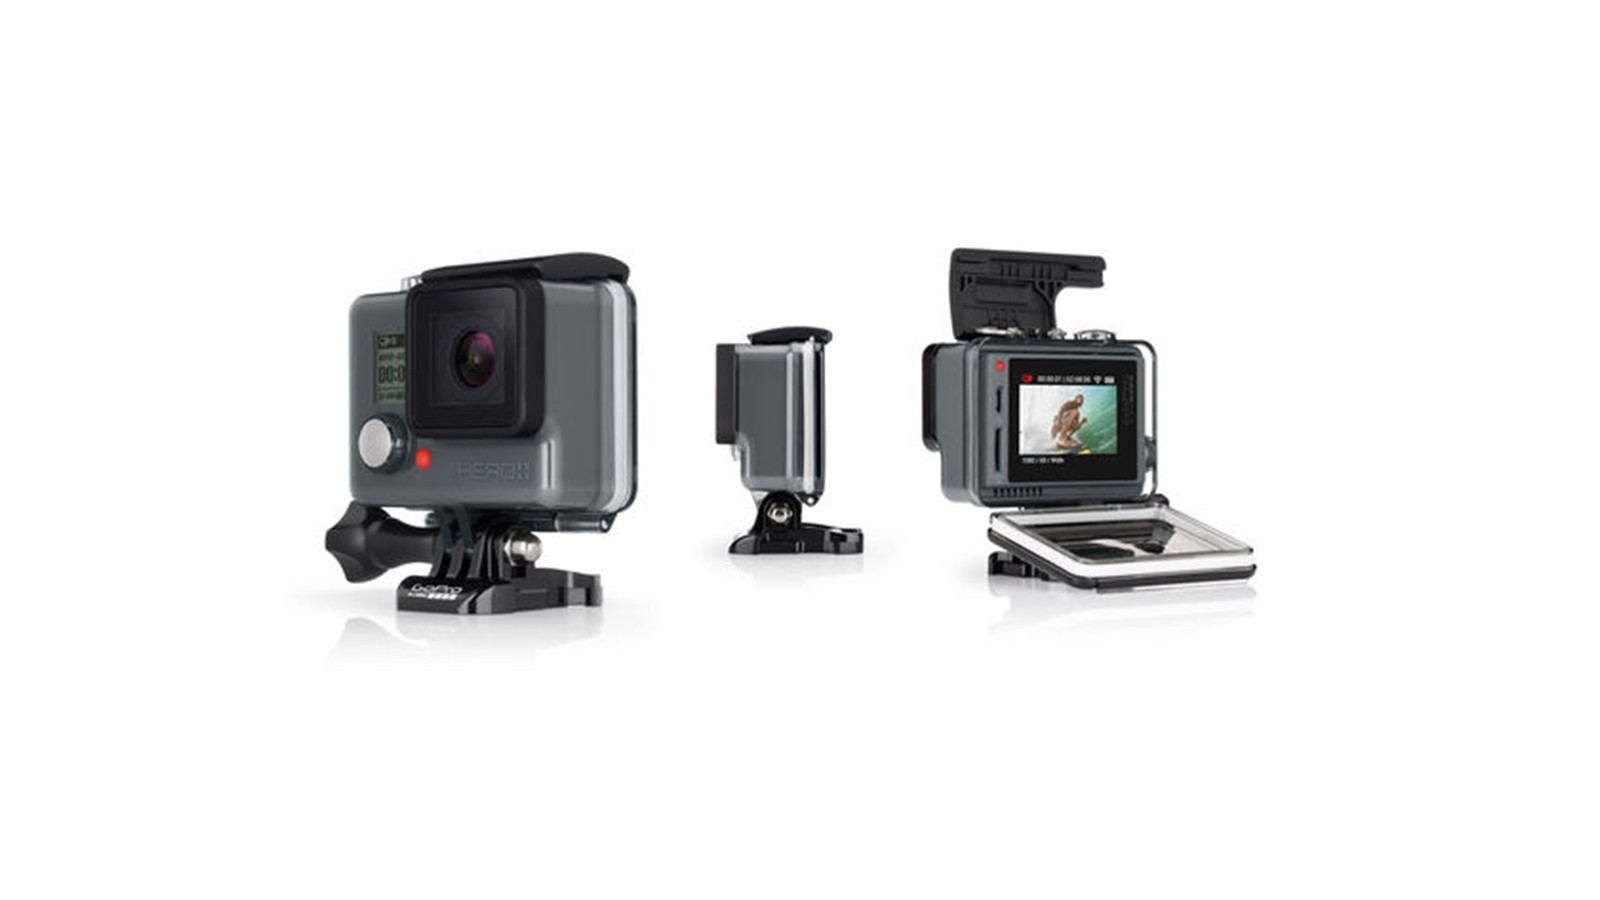 The new GoPro+ LCD brings bring touchscreen usability and wireless connectivity to a lower price point model